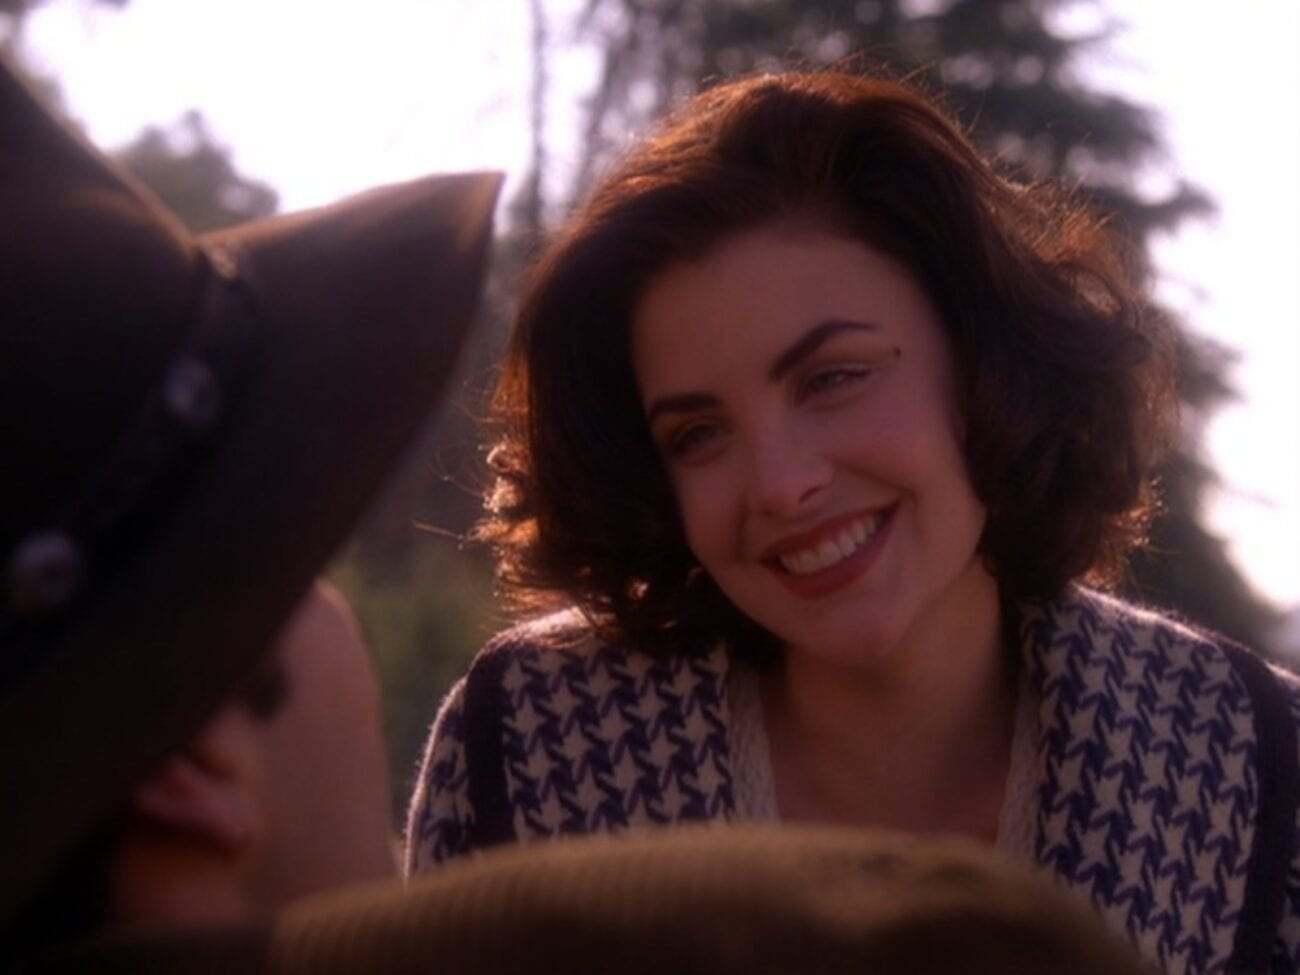 Audrey smiles at Jack, facing her in the foreground